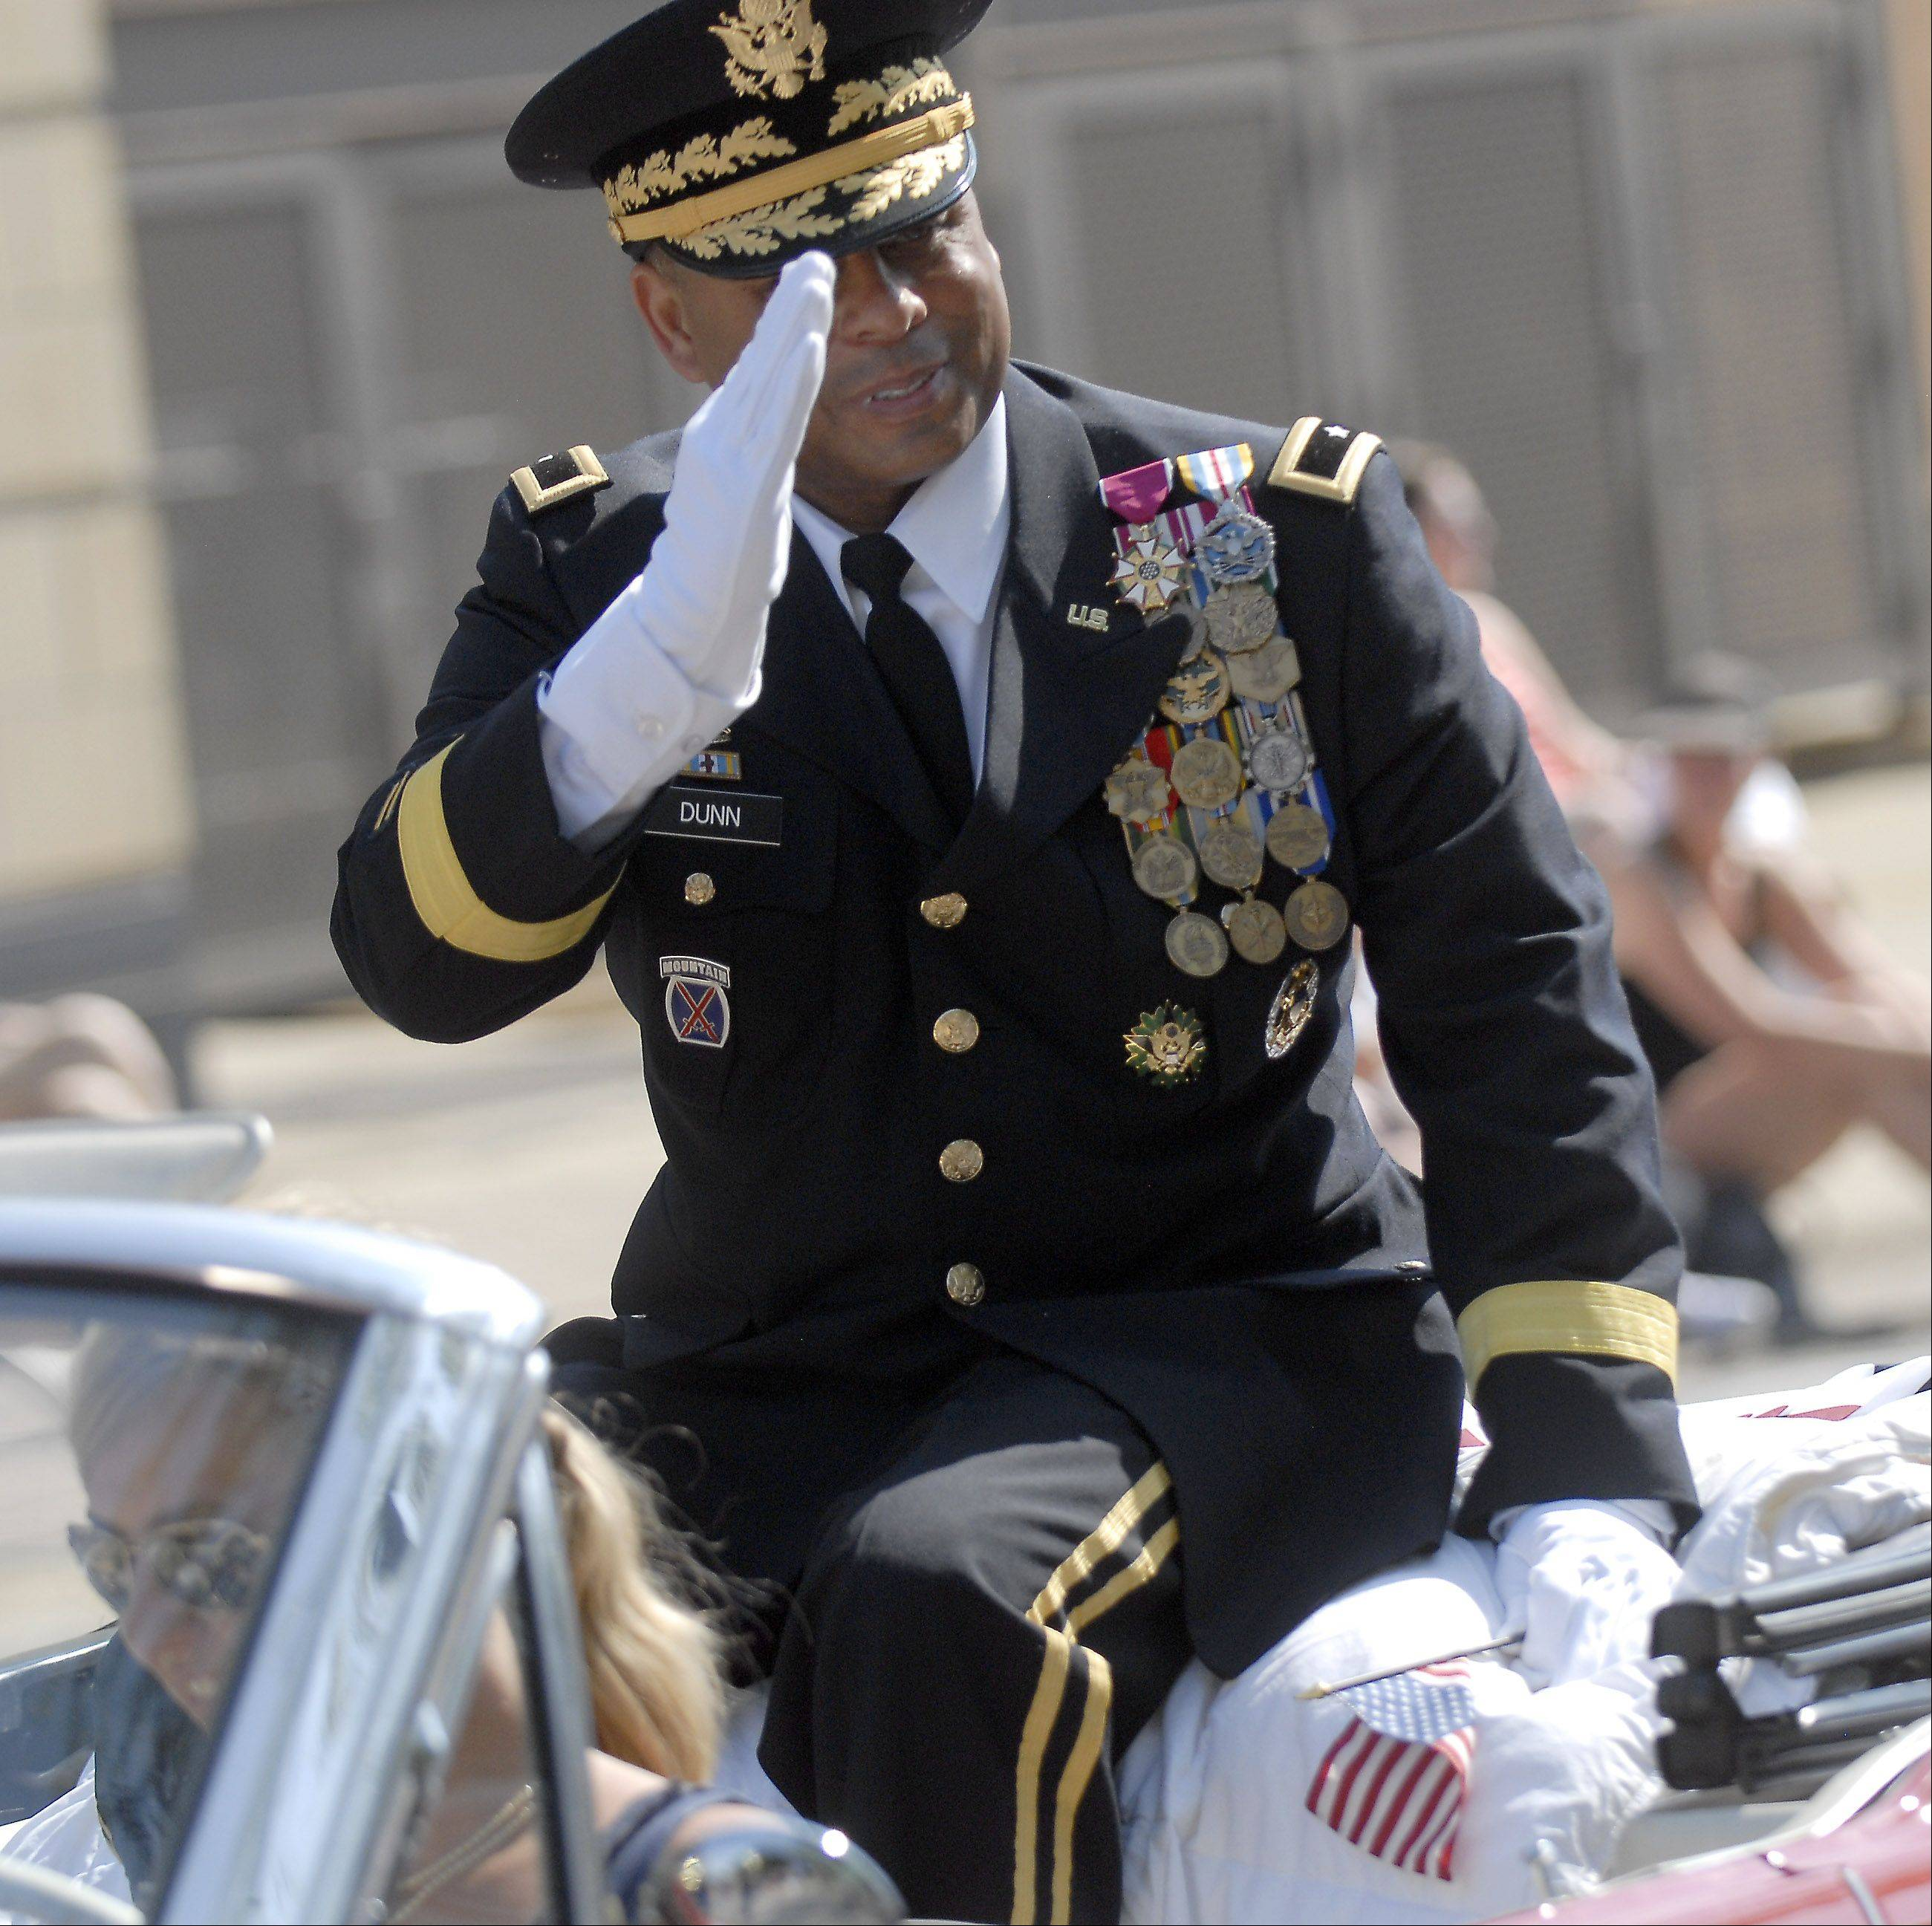 Brigadier General Gracus K. Dunn, Commanding General of the 85th Support Command, Arlington Heights, salutes parade goers.